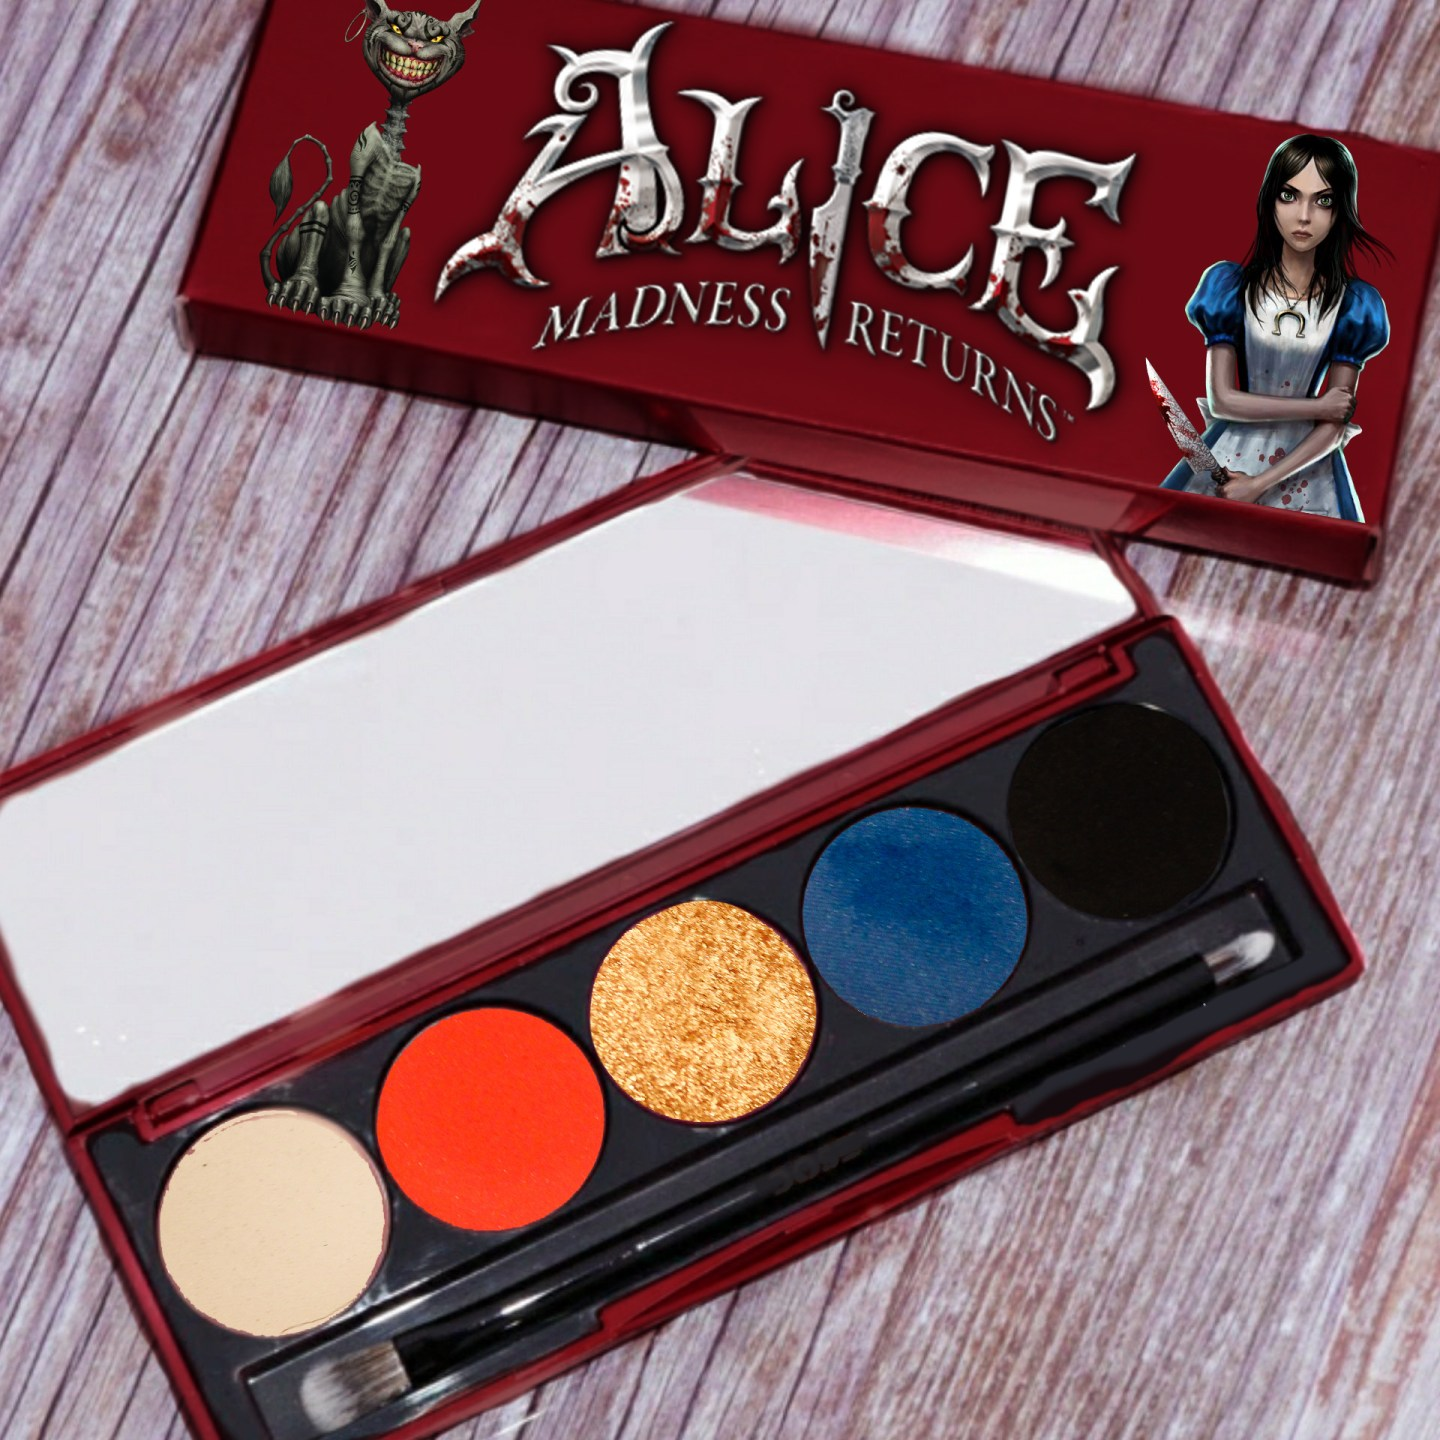 Making My Own Dream Palette Inspired by Alice: Madness Returns 1